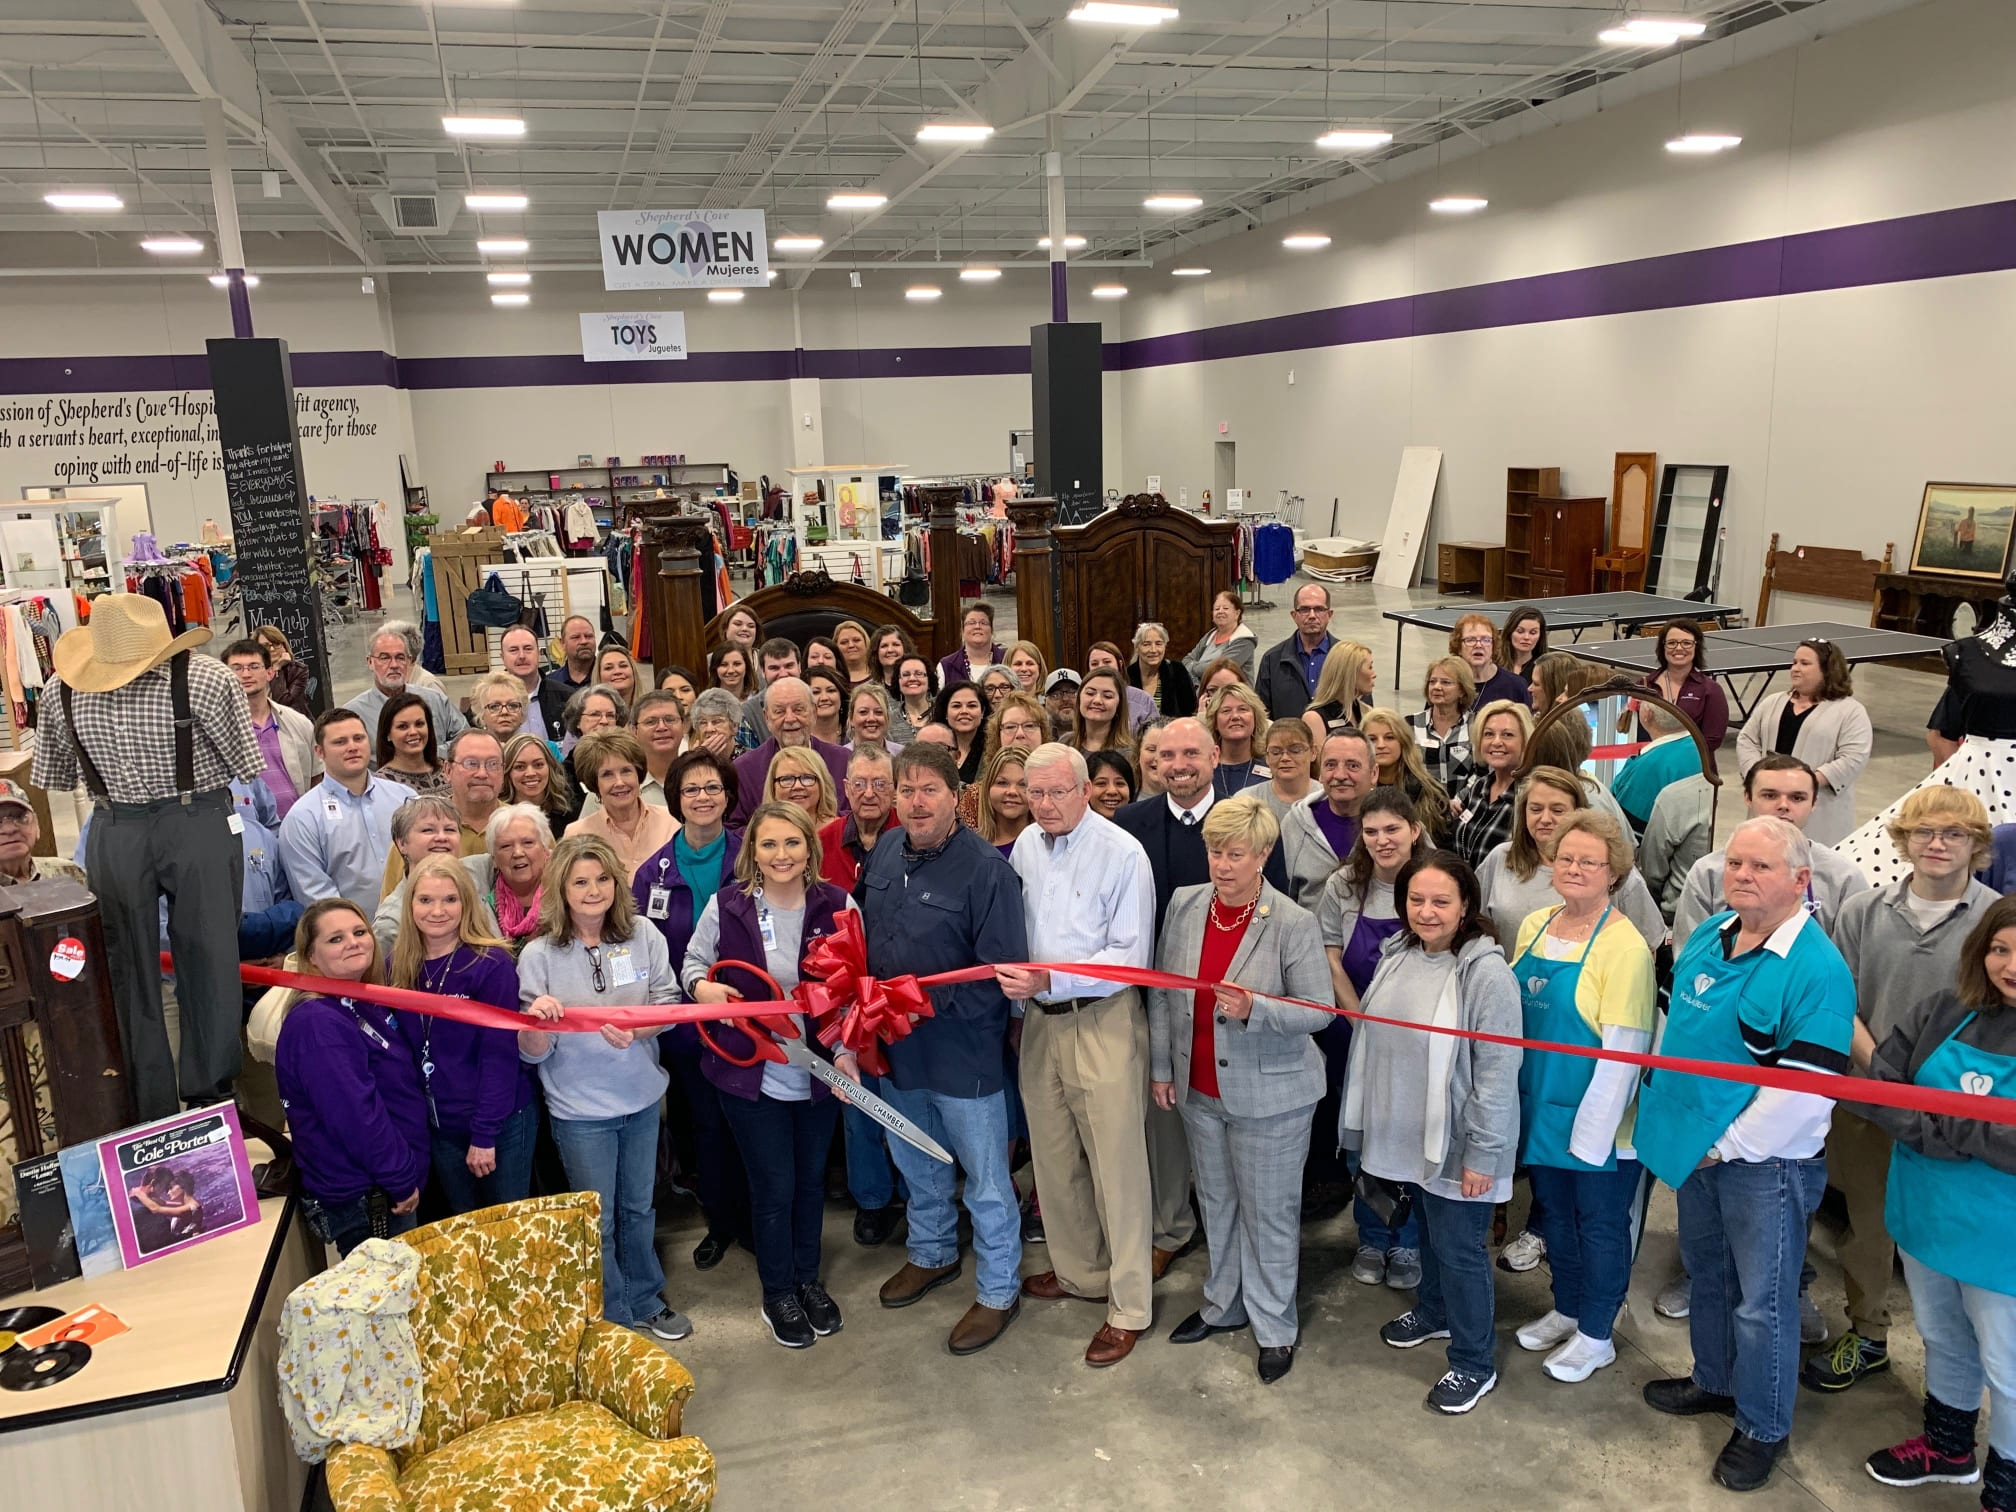 Shepherds-Cove-Thrift-Shoppe-Ribbon-Cutting-3-1-18-w2016(1).jpg